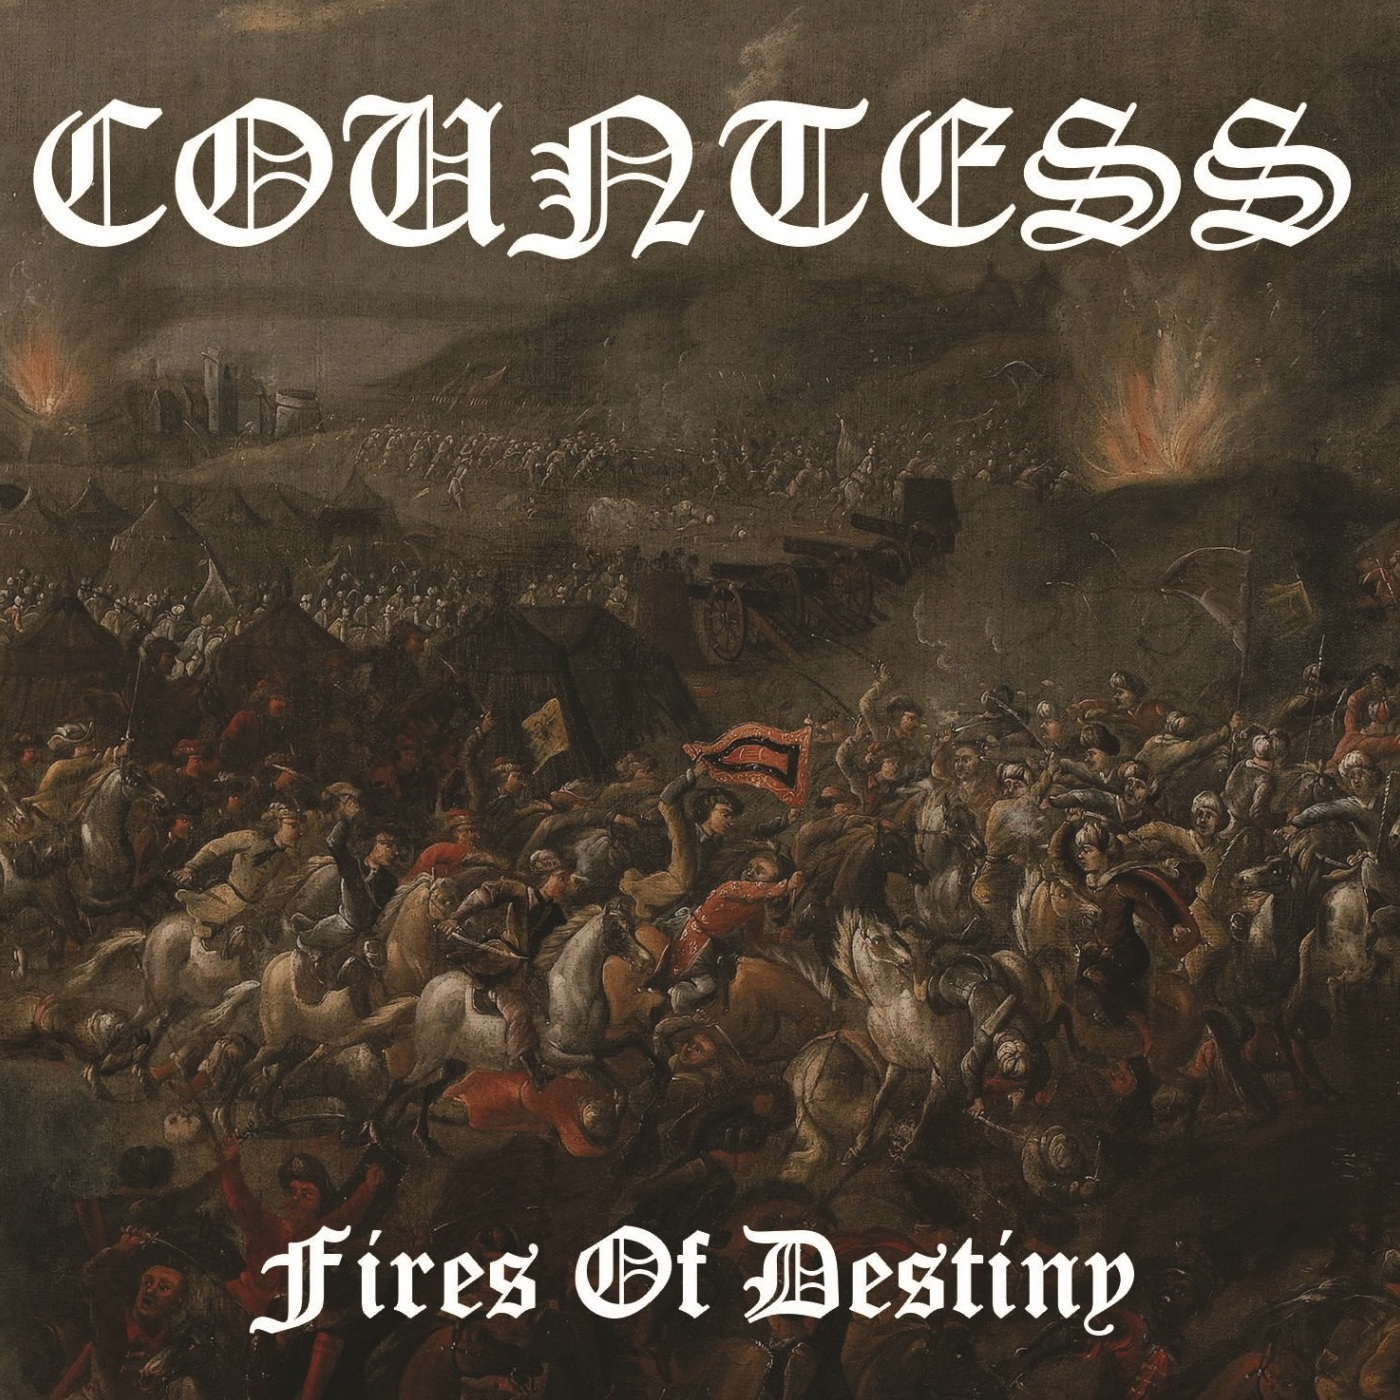 http://www.metalmusicarchives.com/images/covers/countess-fires-of-destiny-20160716013521.jpg